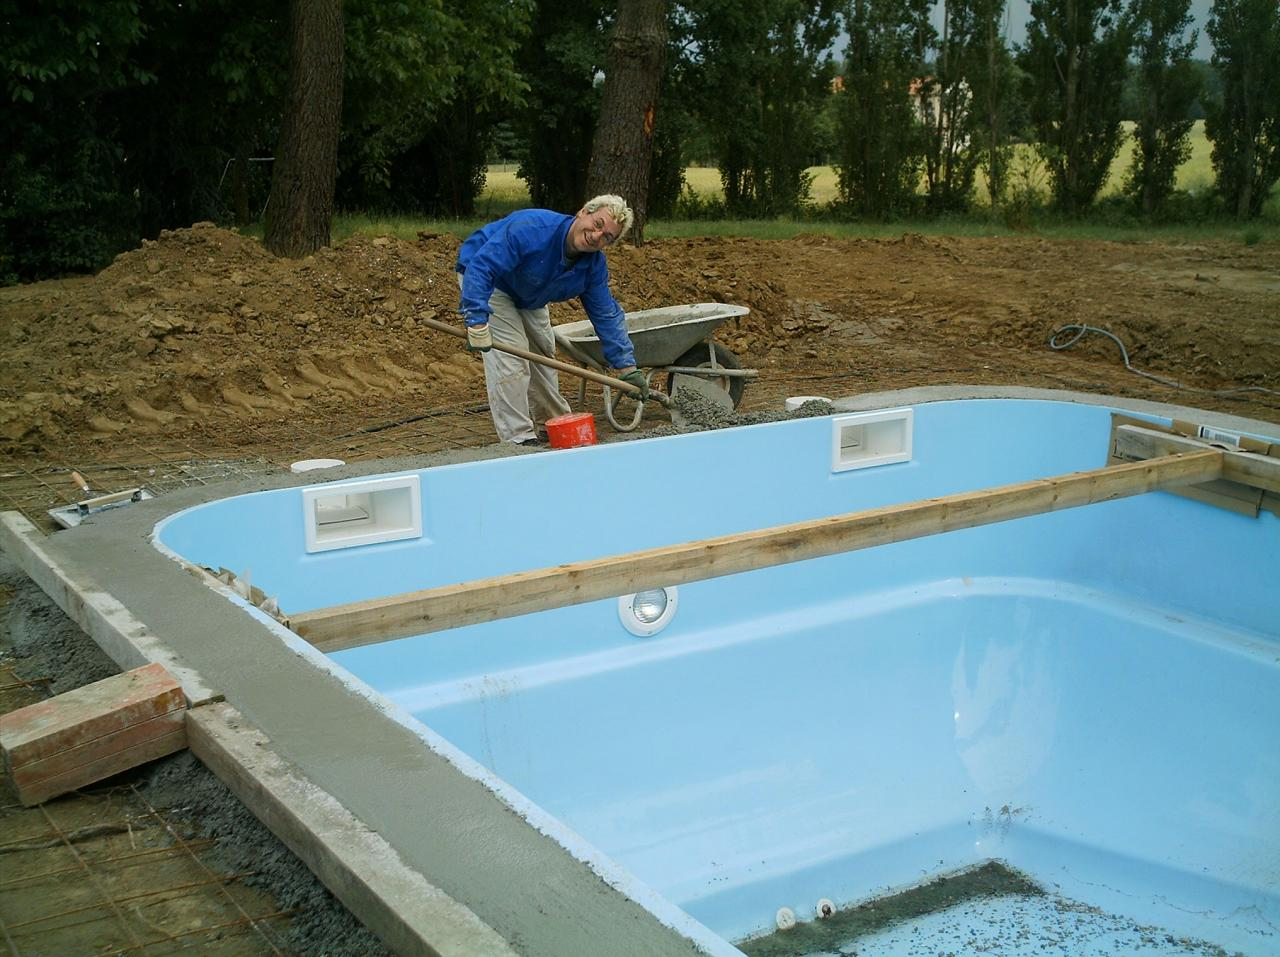 Travaux d une piscine coque comment s y prendre for Piscine en polyester